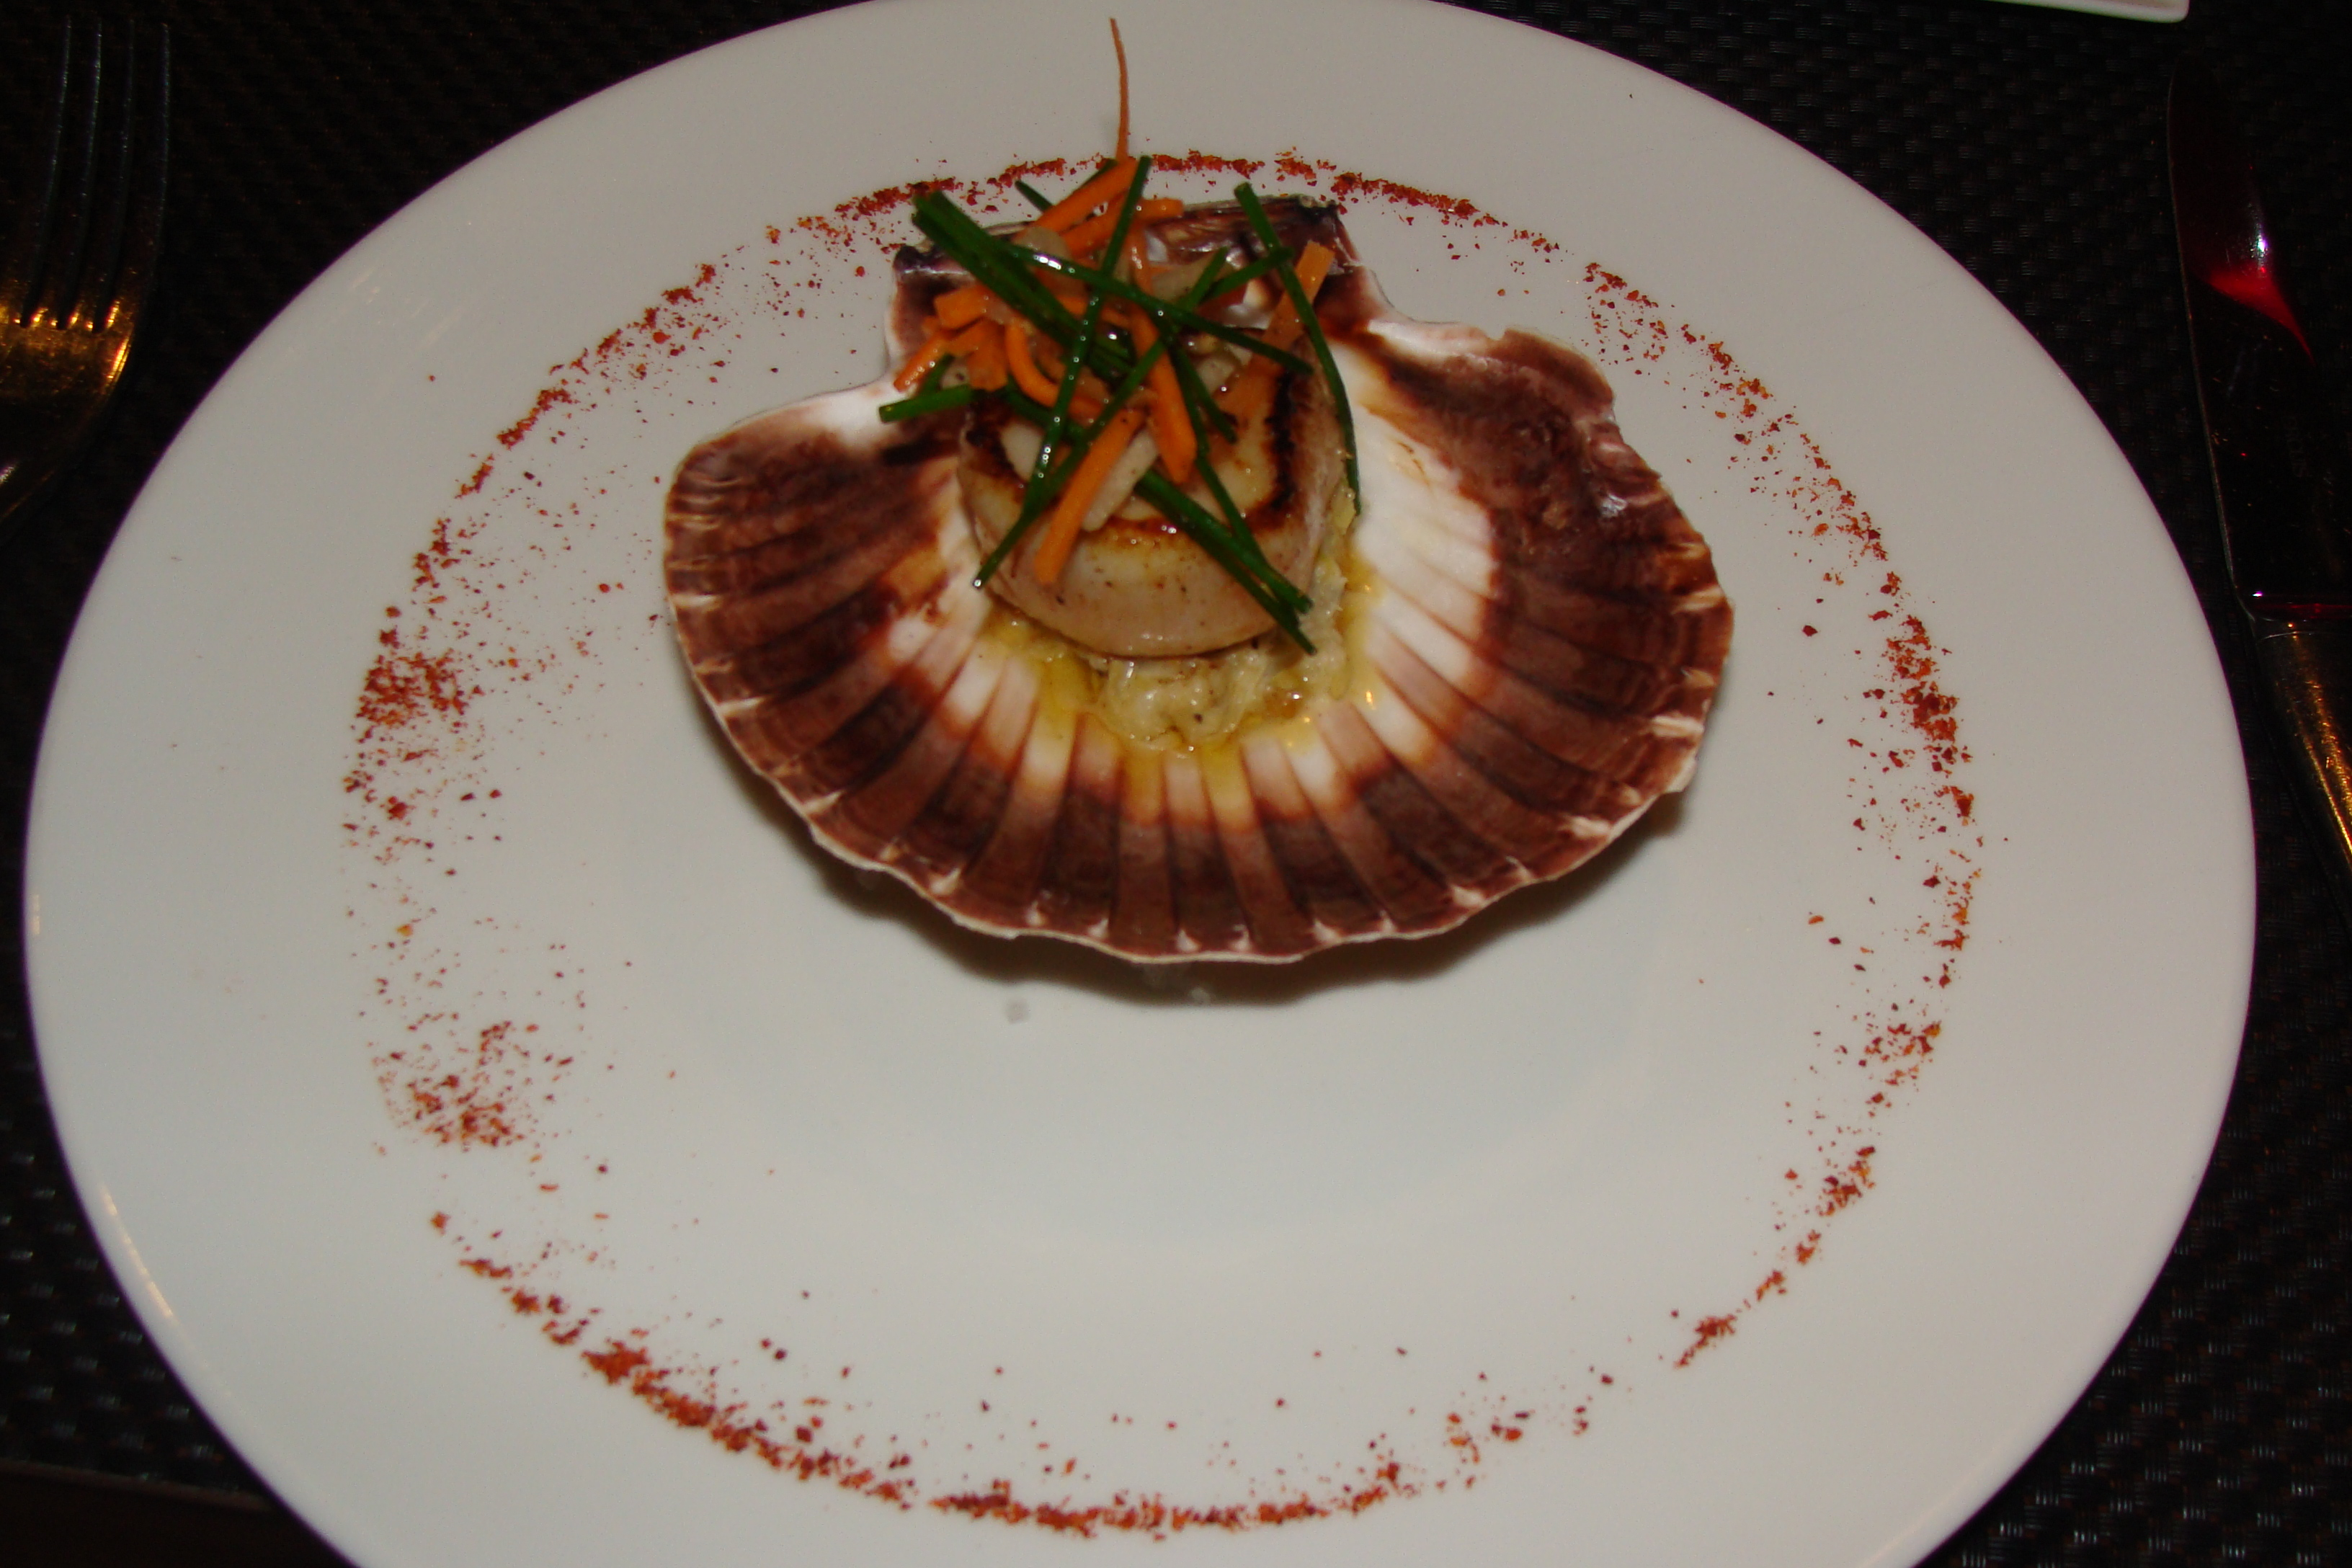 Scallops served on their own shell at London's L'Atelier by Joel Robuchon